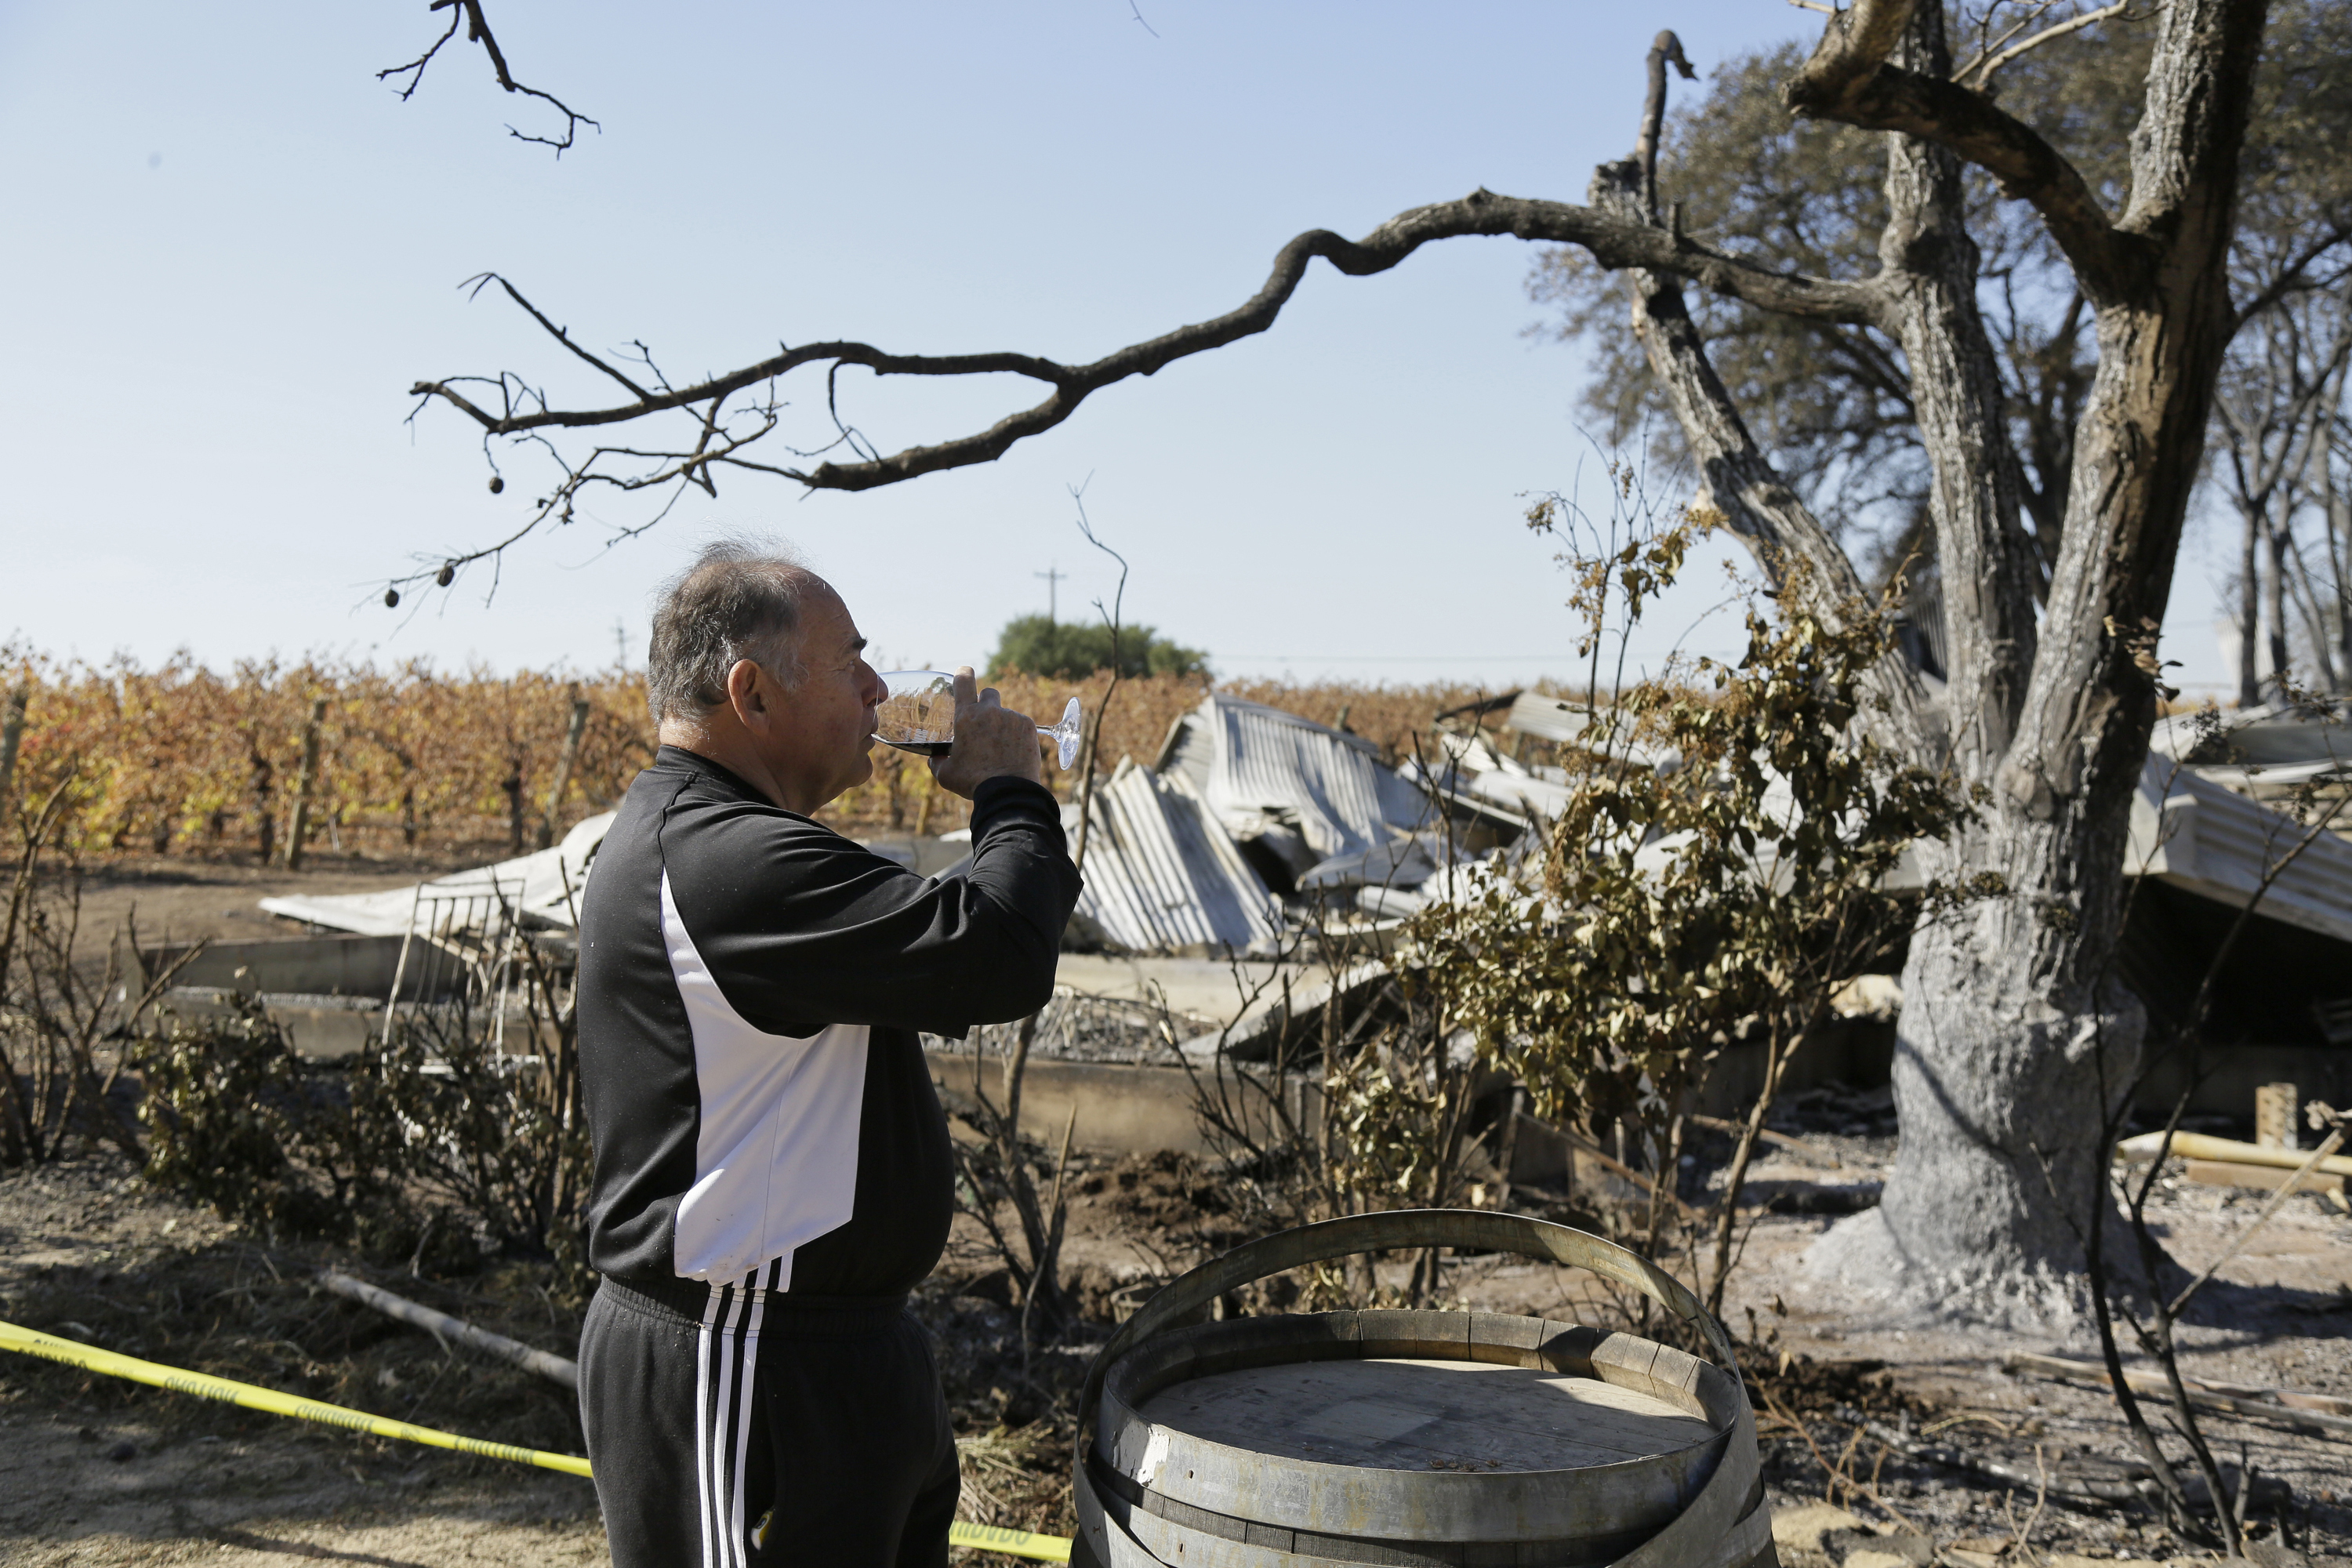 California wineries breathing easier following latest round of wildfires